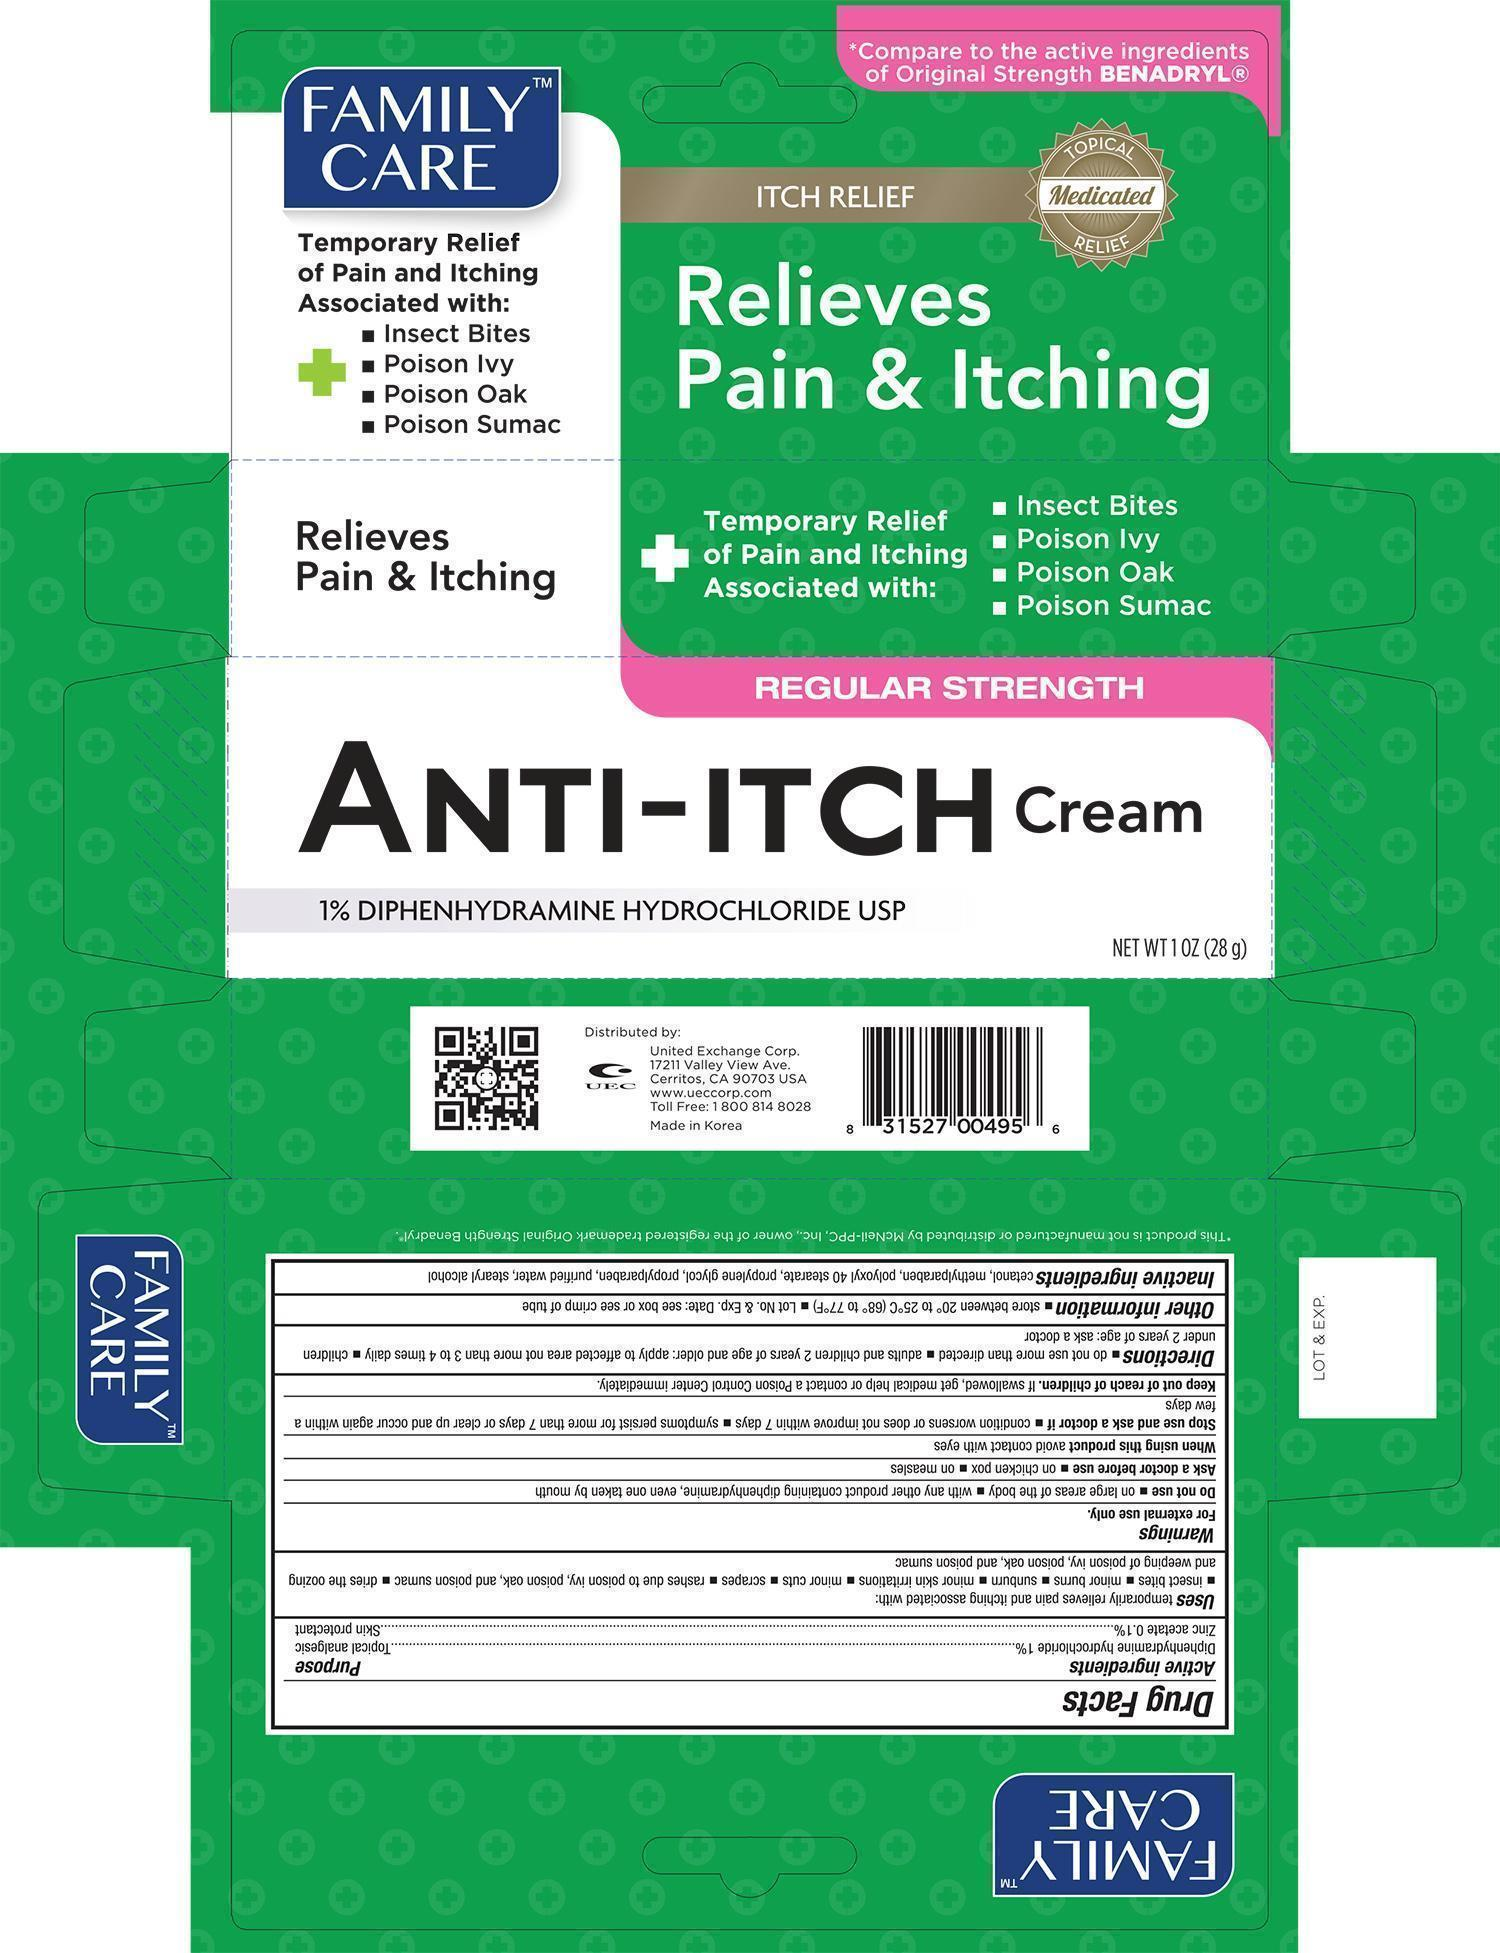 Family Care Anti-itch (Diphenhydramine Hydrochloride Zinc Acetate) Cream [United Exchange Corp.]